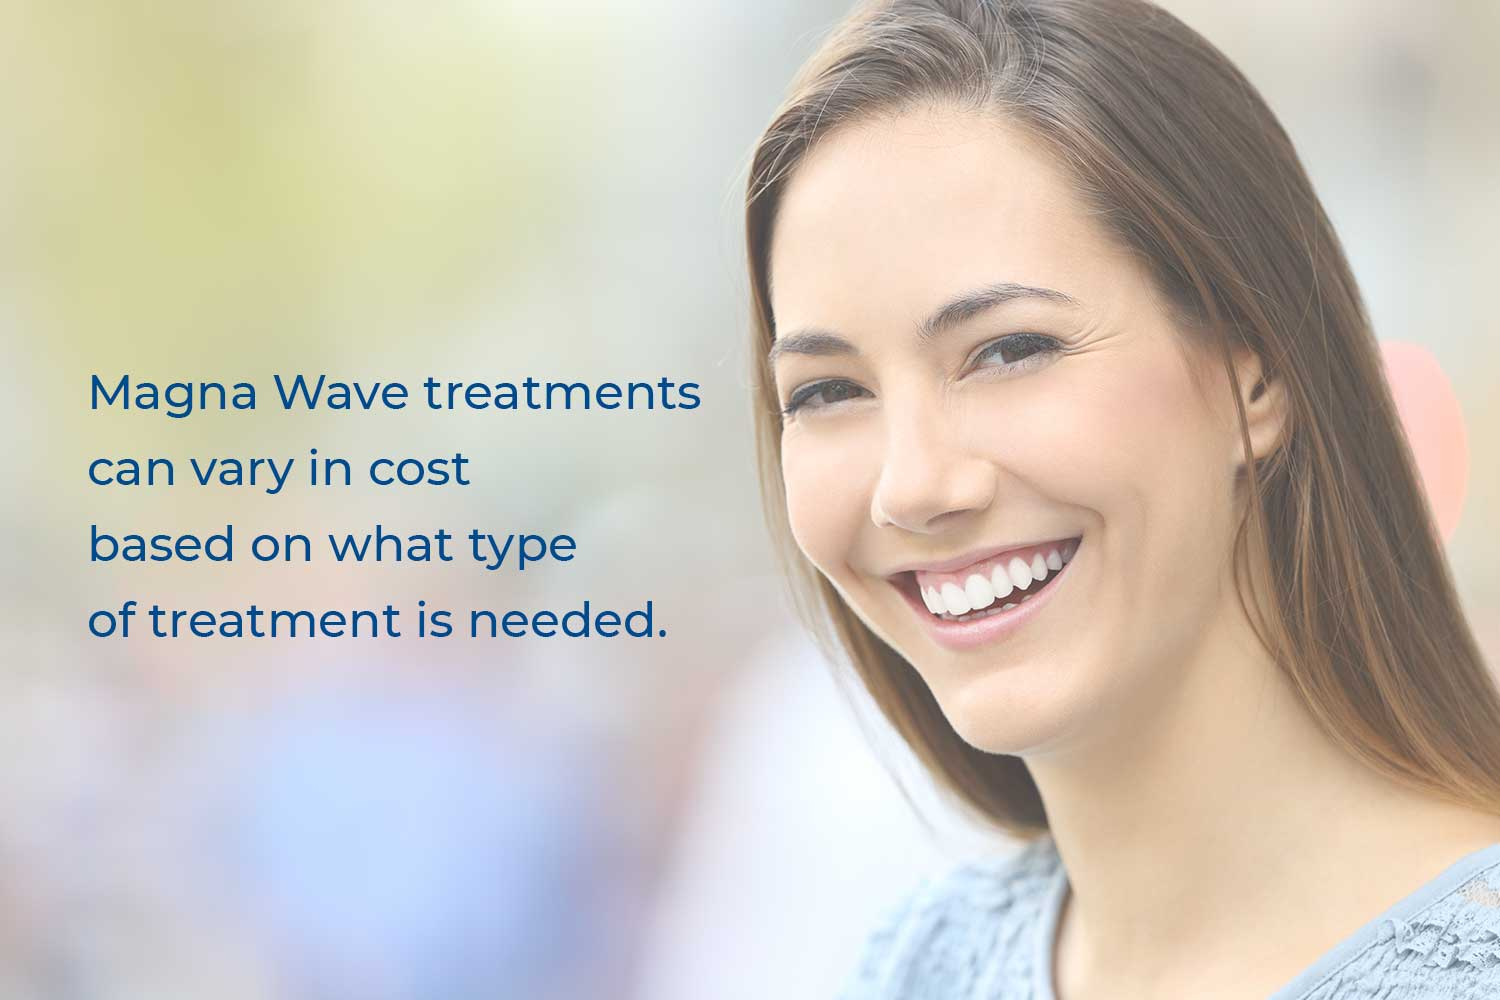 Magna Wave treatments can vary in cost based on what type of treatment is needed.